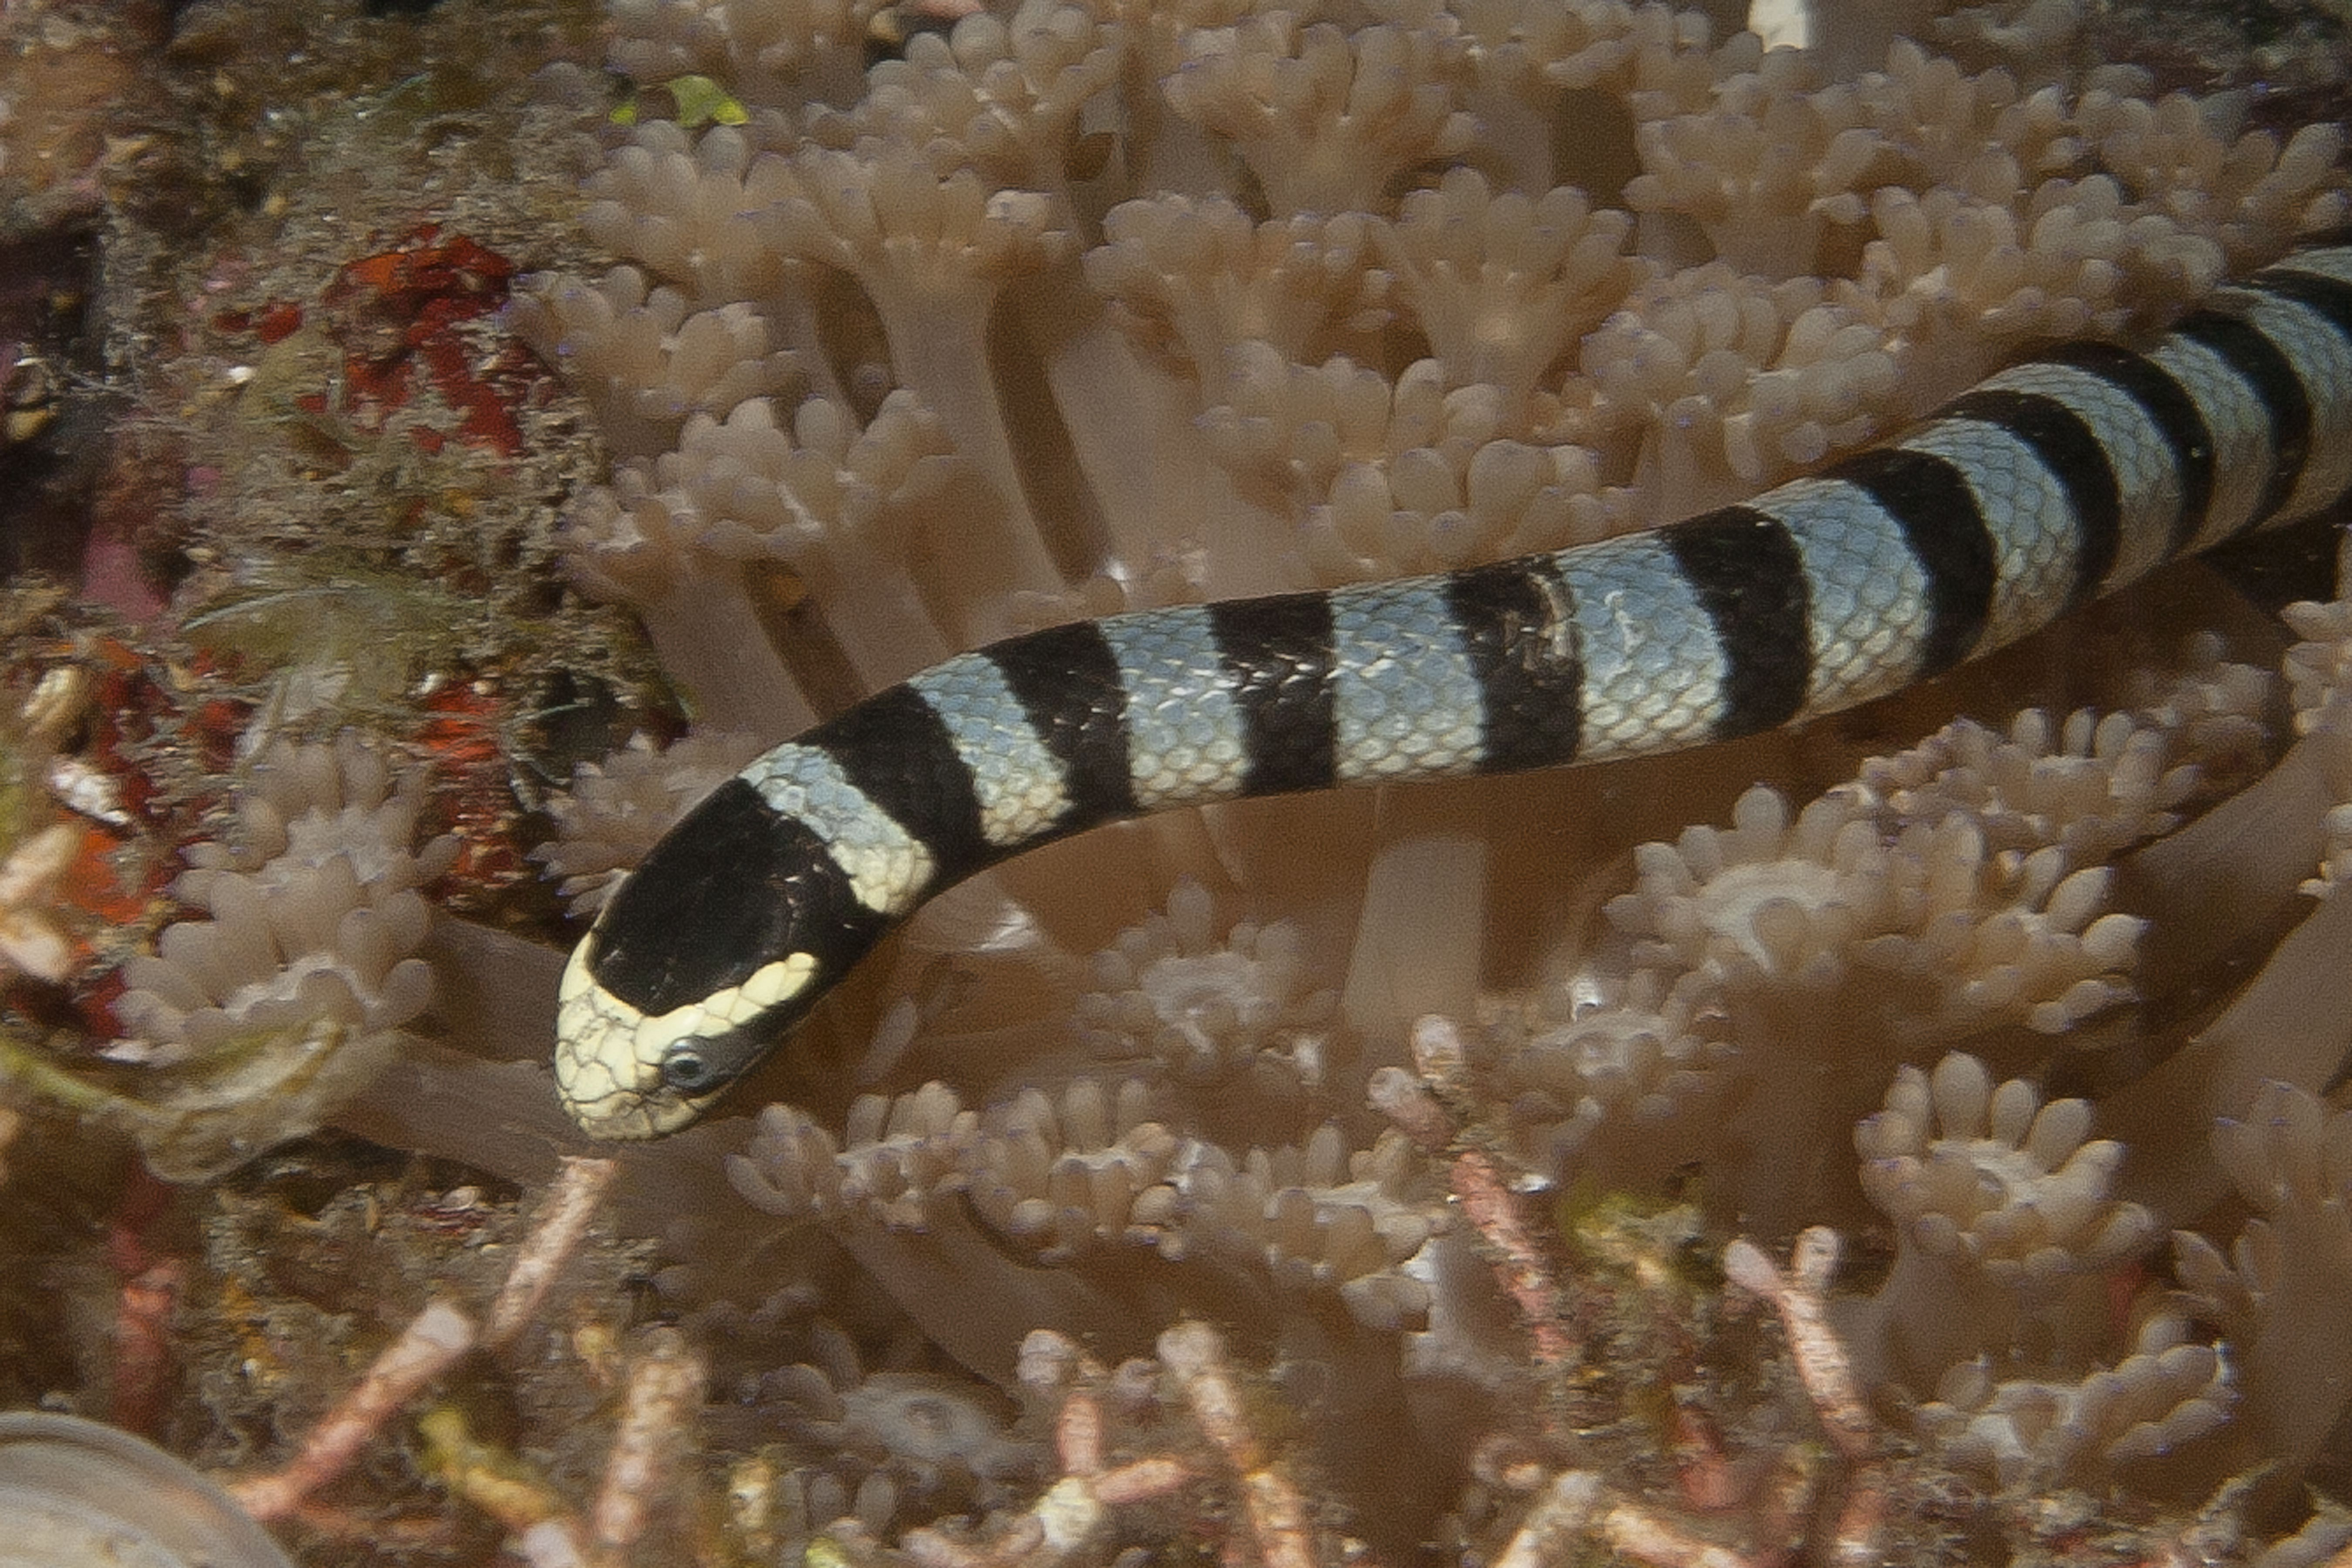 Habitat destruction and over-fishing are threats to sea snake survival.